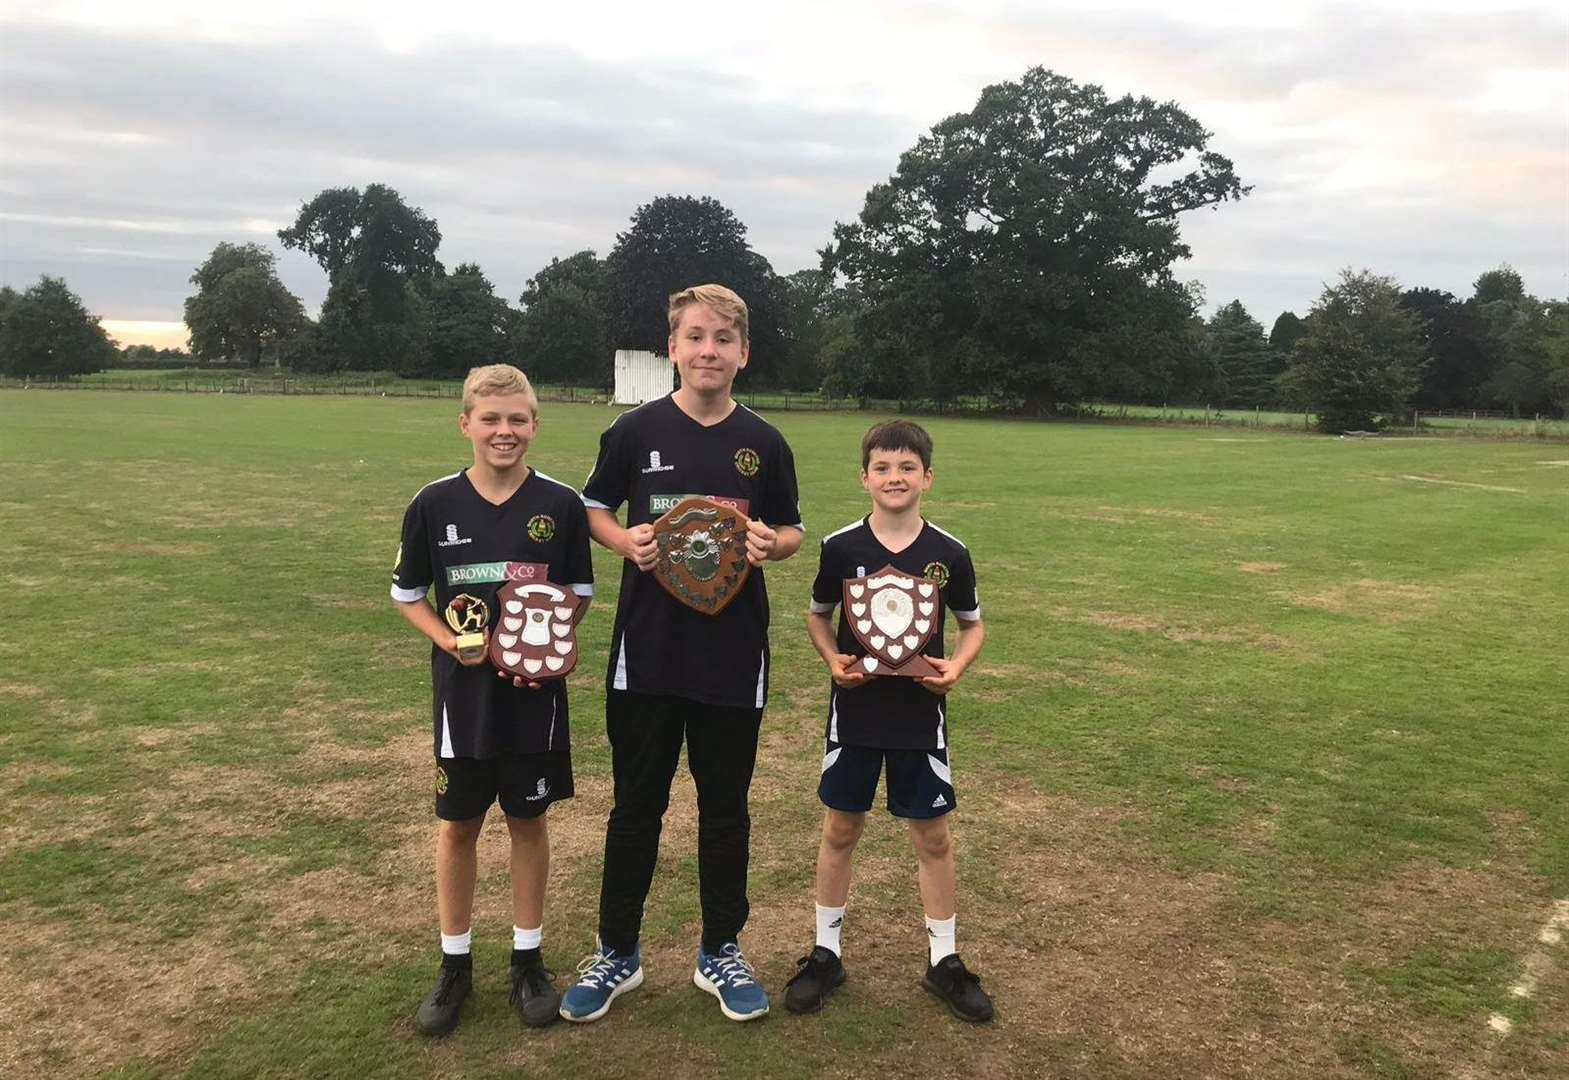 North Runcton cricketers honoured after another successful season on the pitch